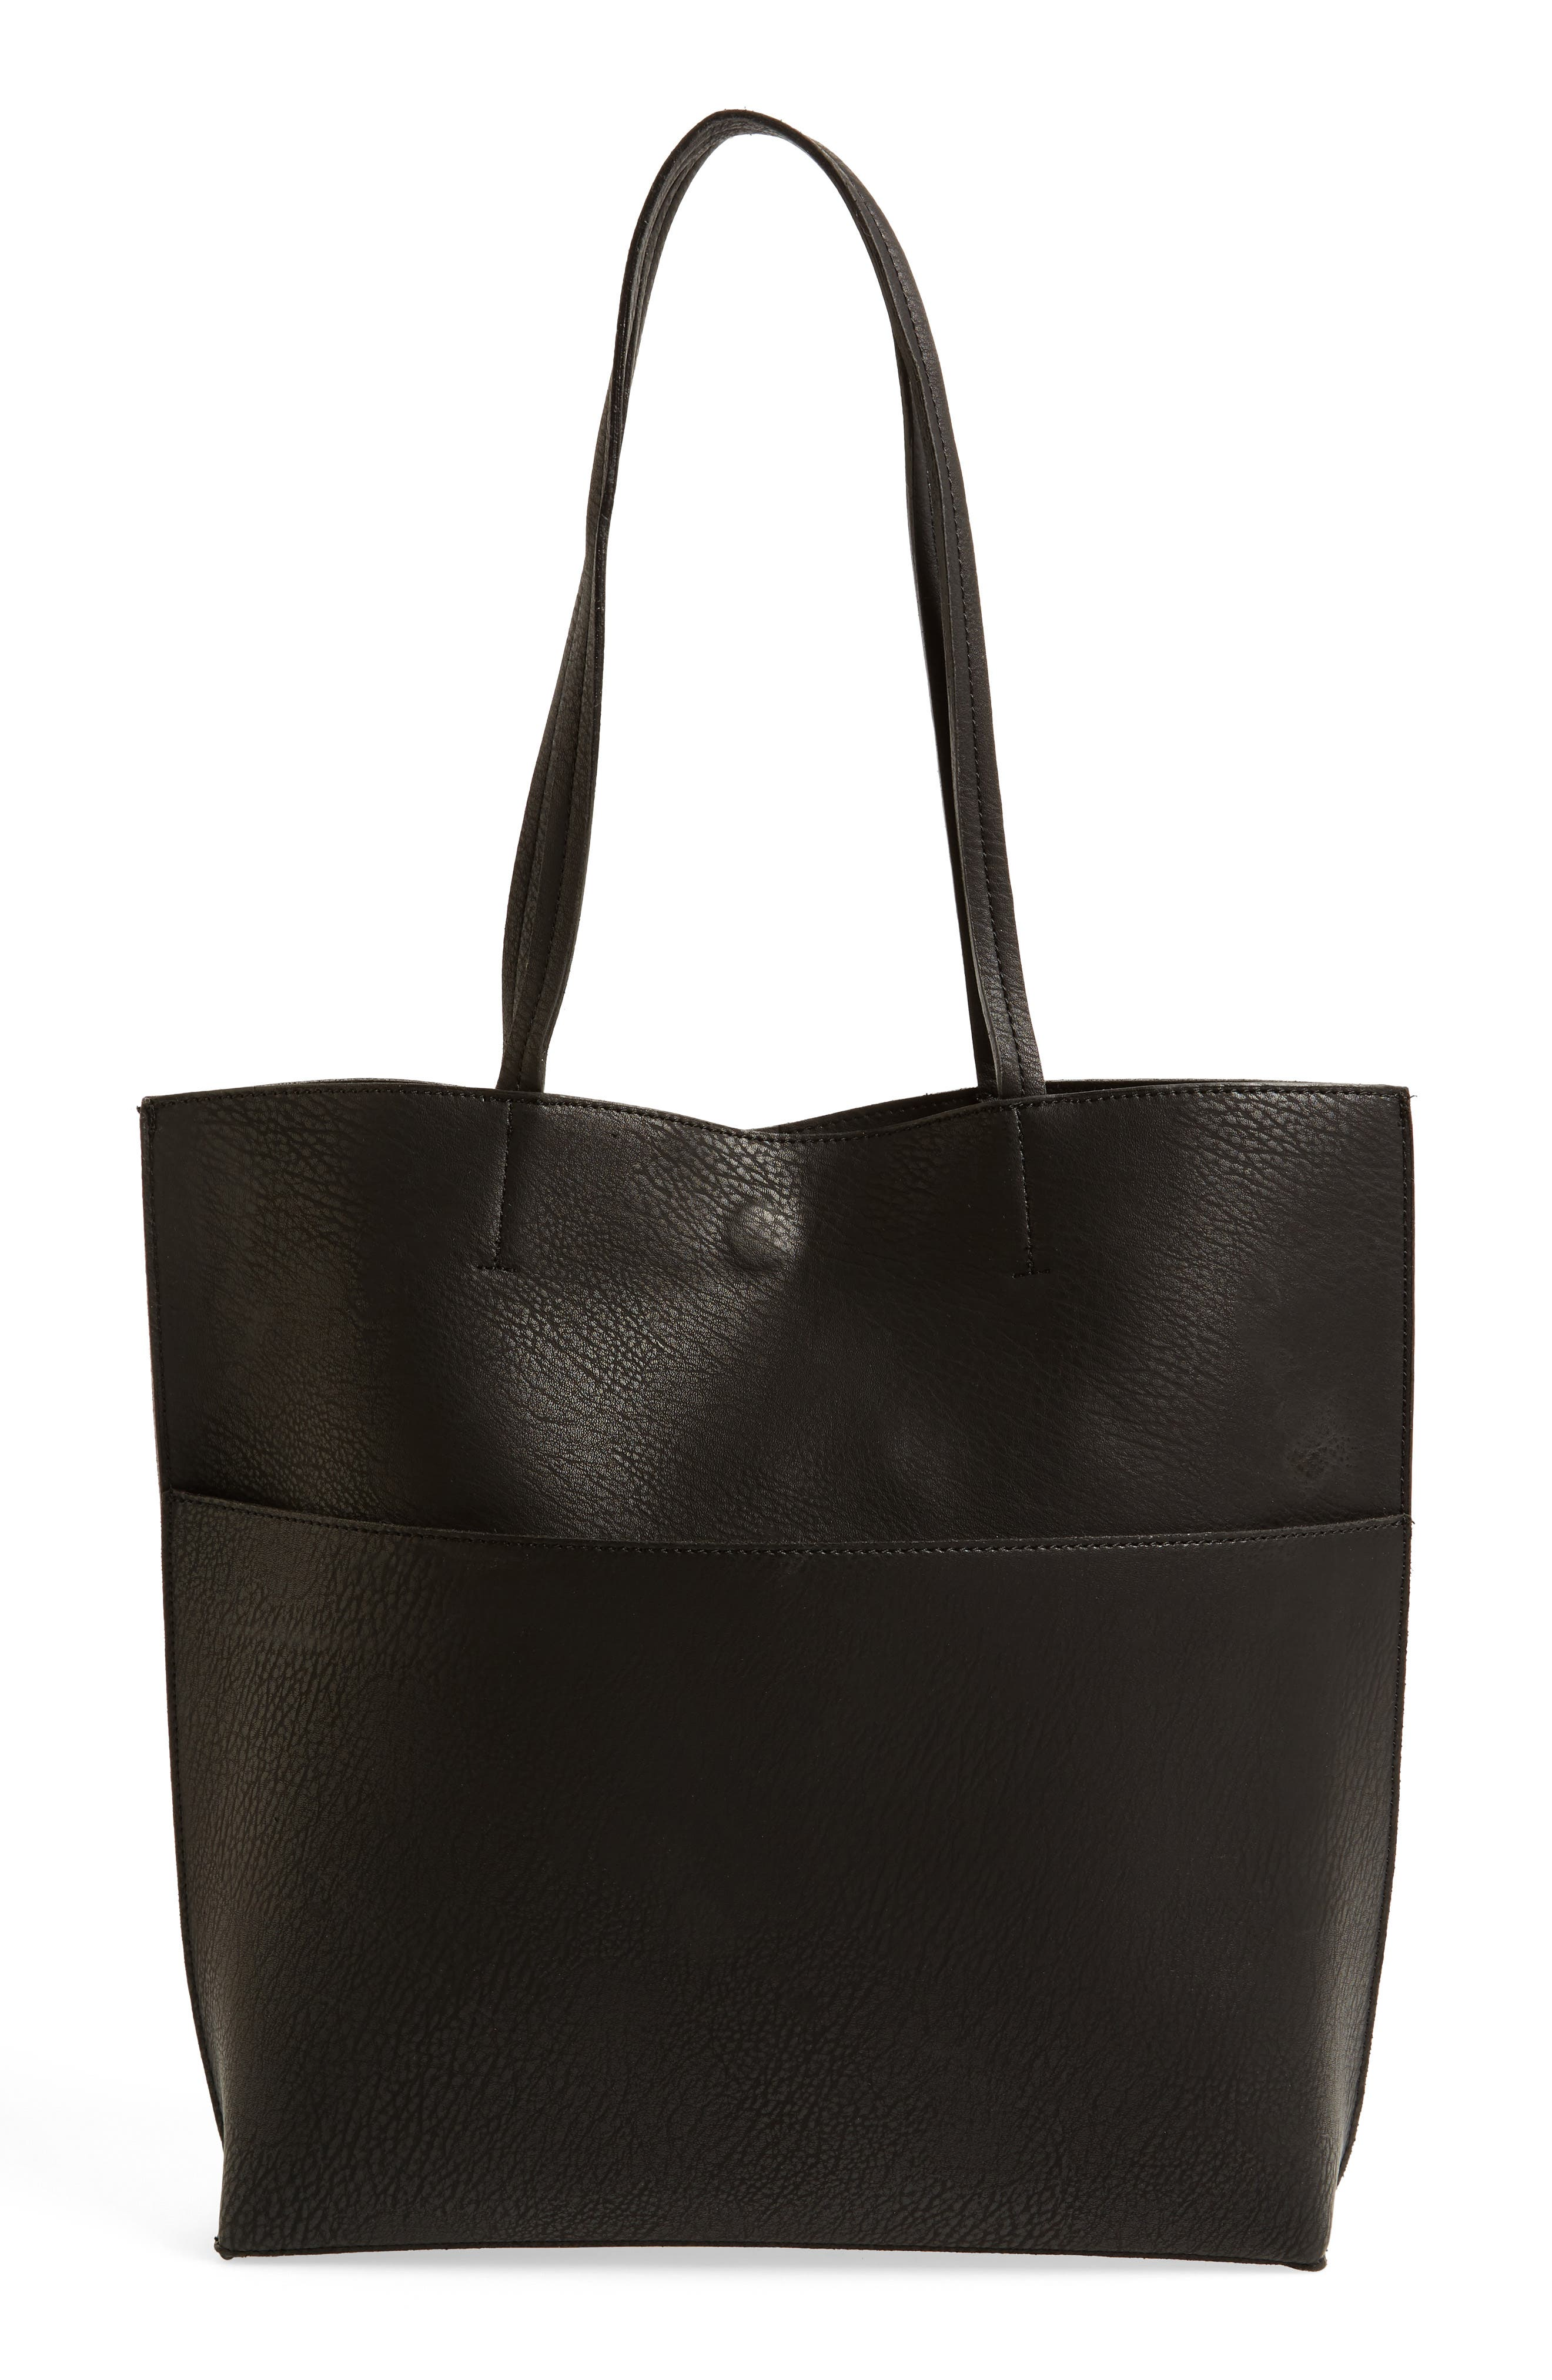 Alternate Image 1 Selected - Street Level Faux Leather Tote & Tassel Clutch